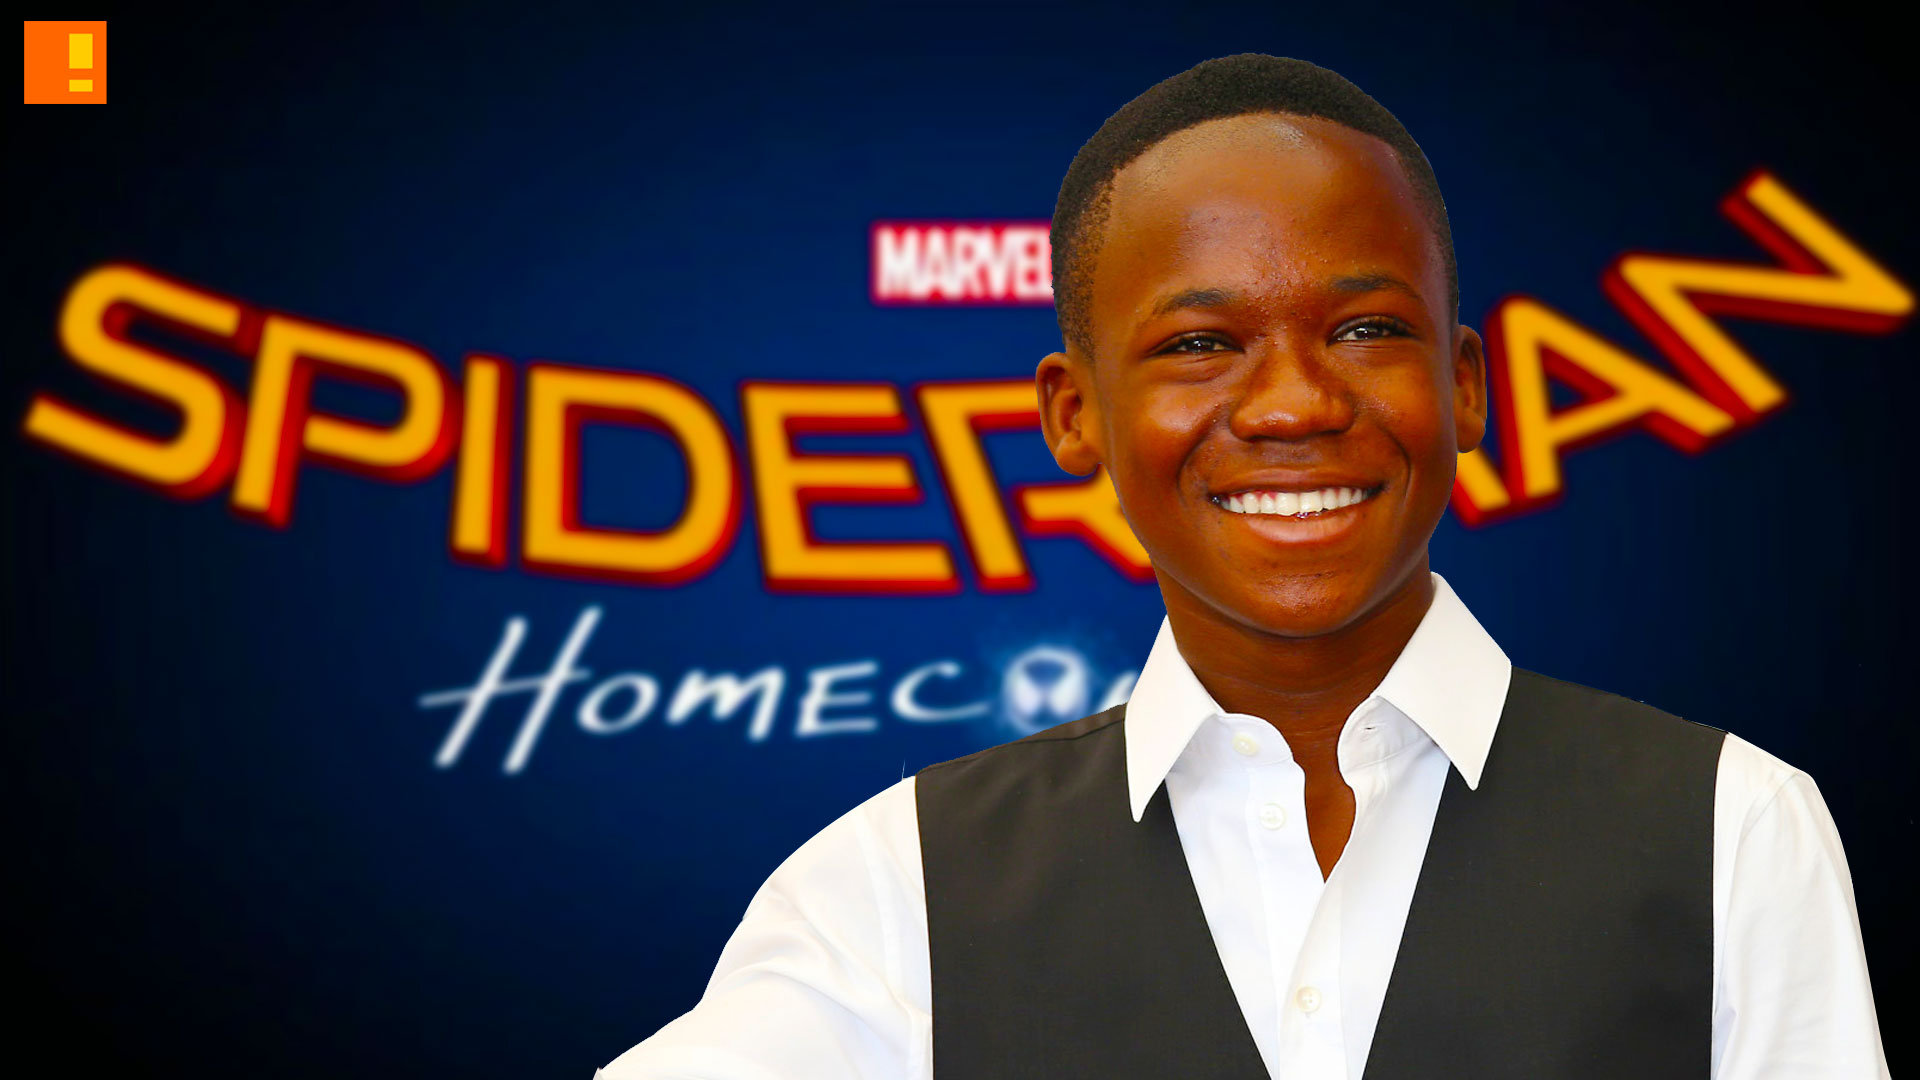 spiderman, homecoming, spider-man,abraham attah, casting, sony, marvel, the action pixel, entertainment on tap